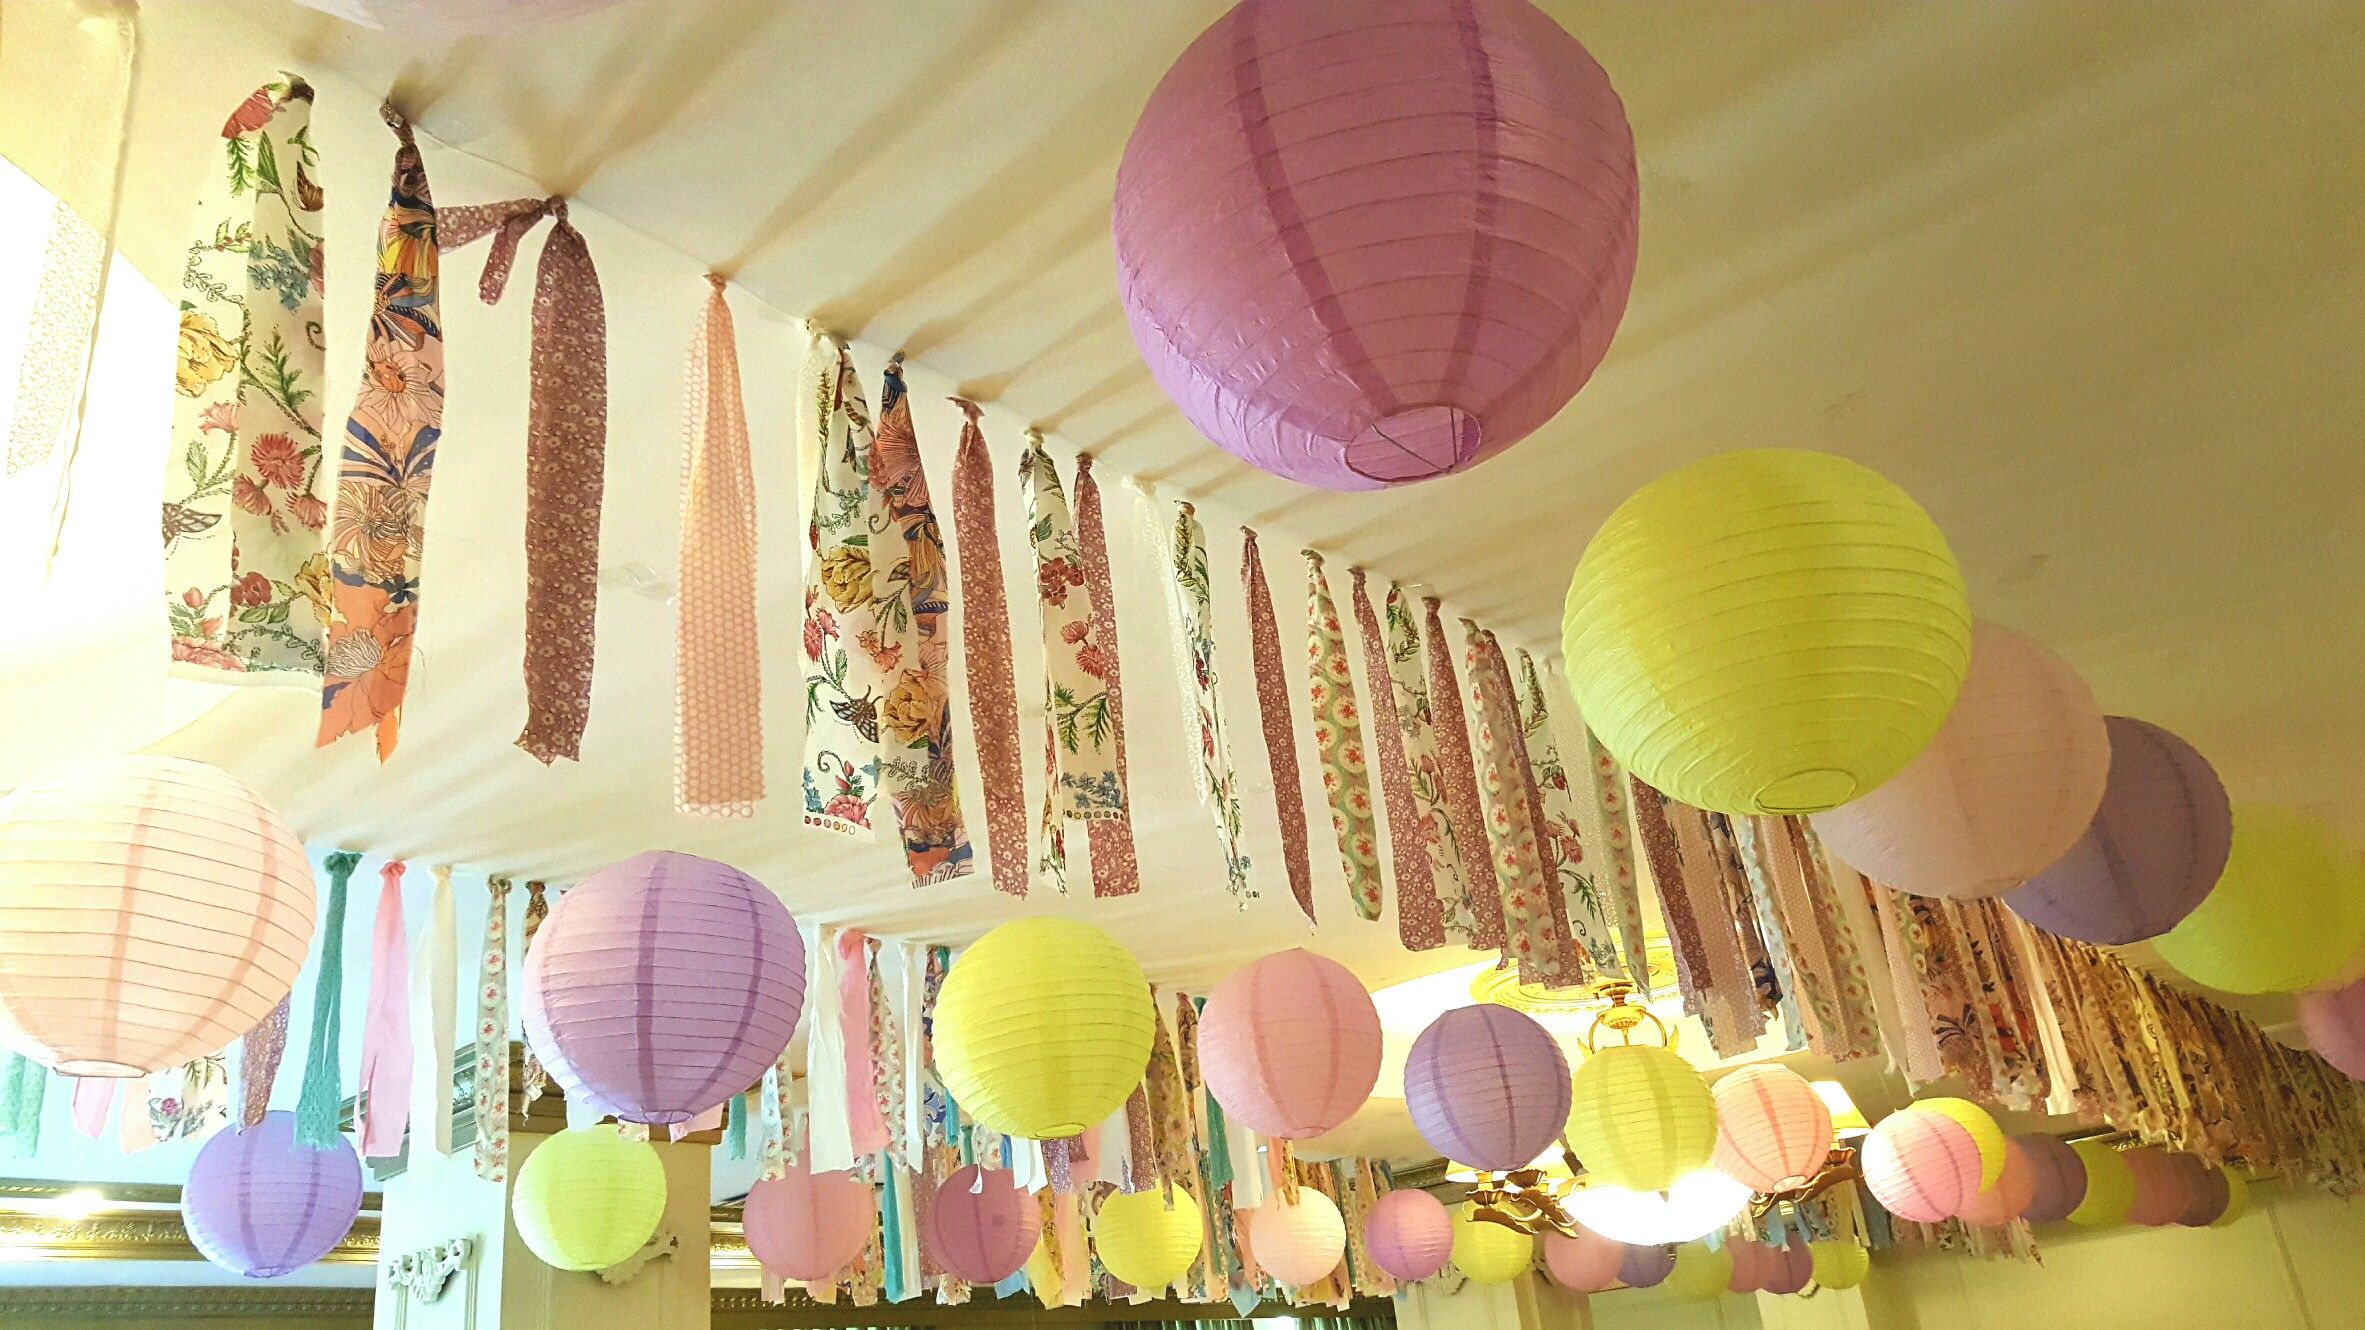 Unicorn Rainbow Party Ceiling Decoration Ideas Made Of Pastel Balloon Lanterns And Fabric Party Ceiling Decorations Balloon Lanterns Diy Classroom Decorations